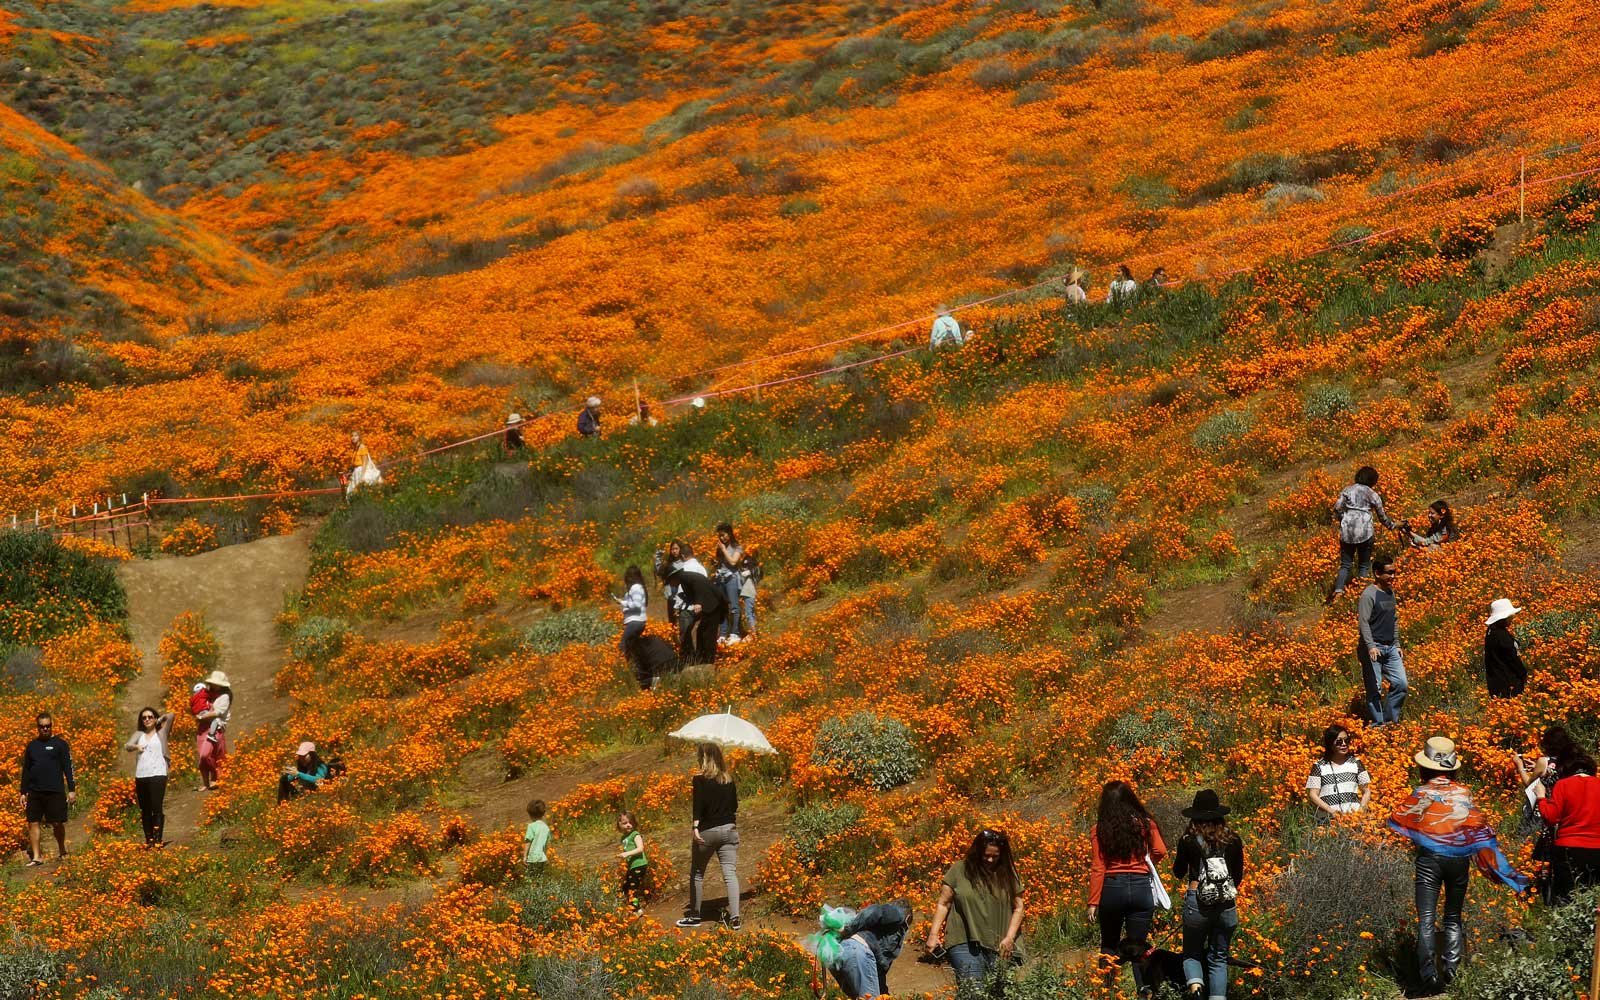 City of Lake Elsinore reopens Walker Canyon after Poppy super bloom shutdown